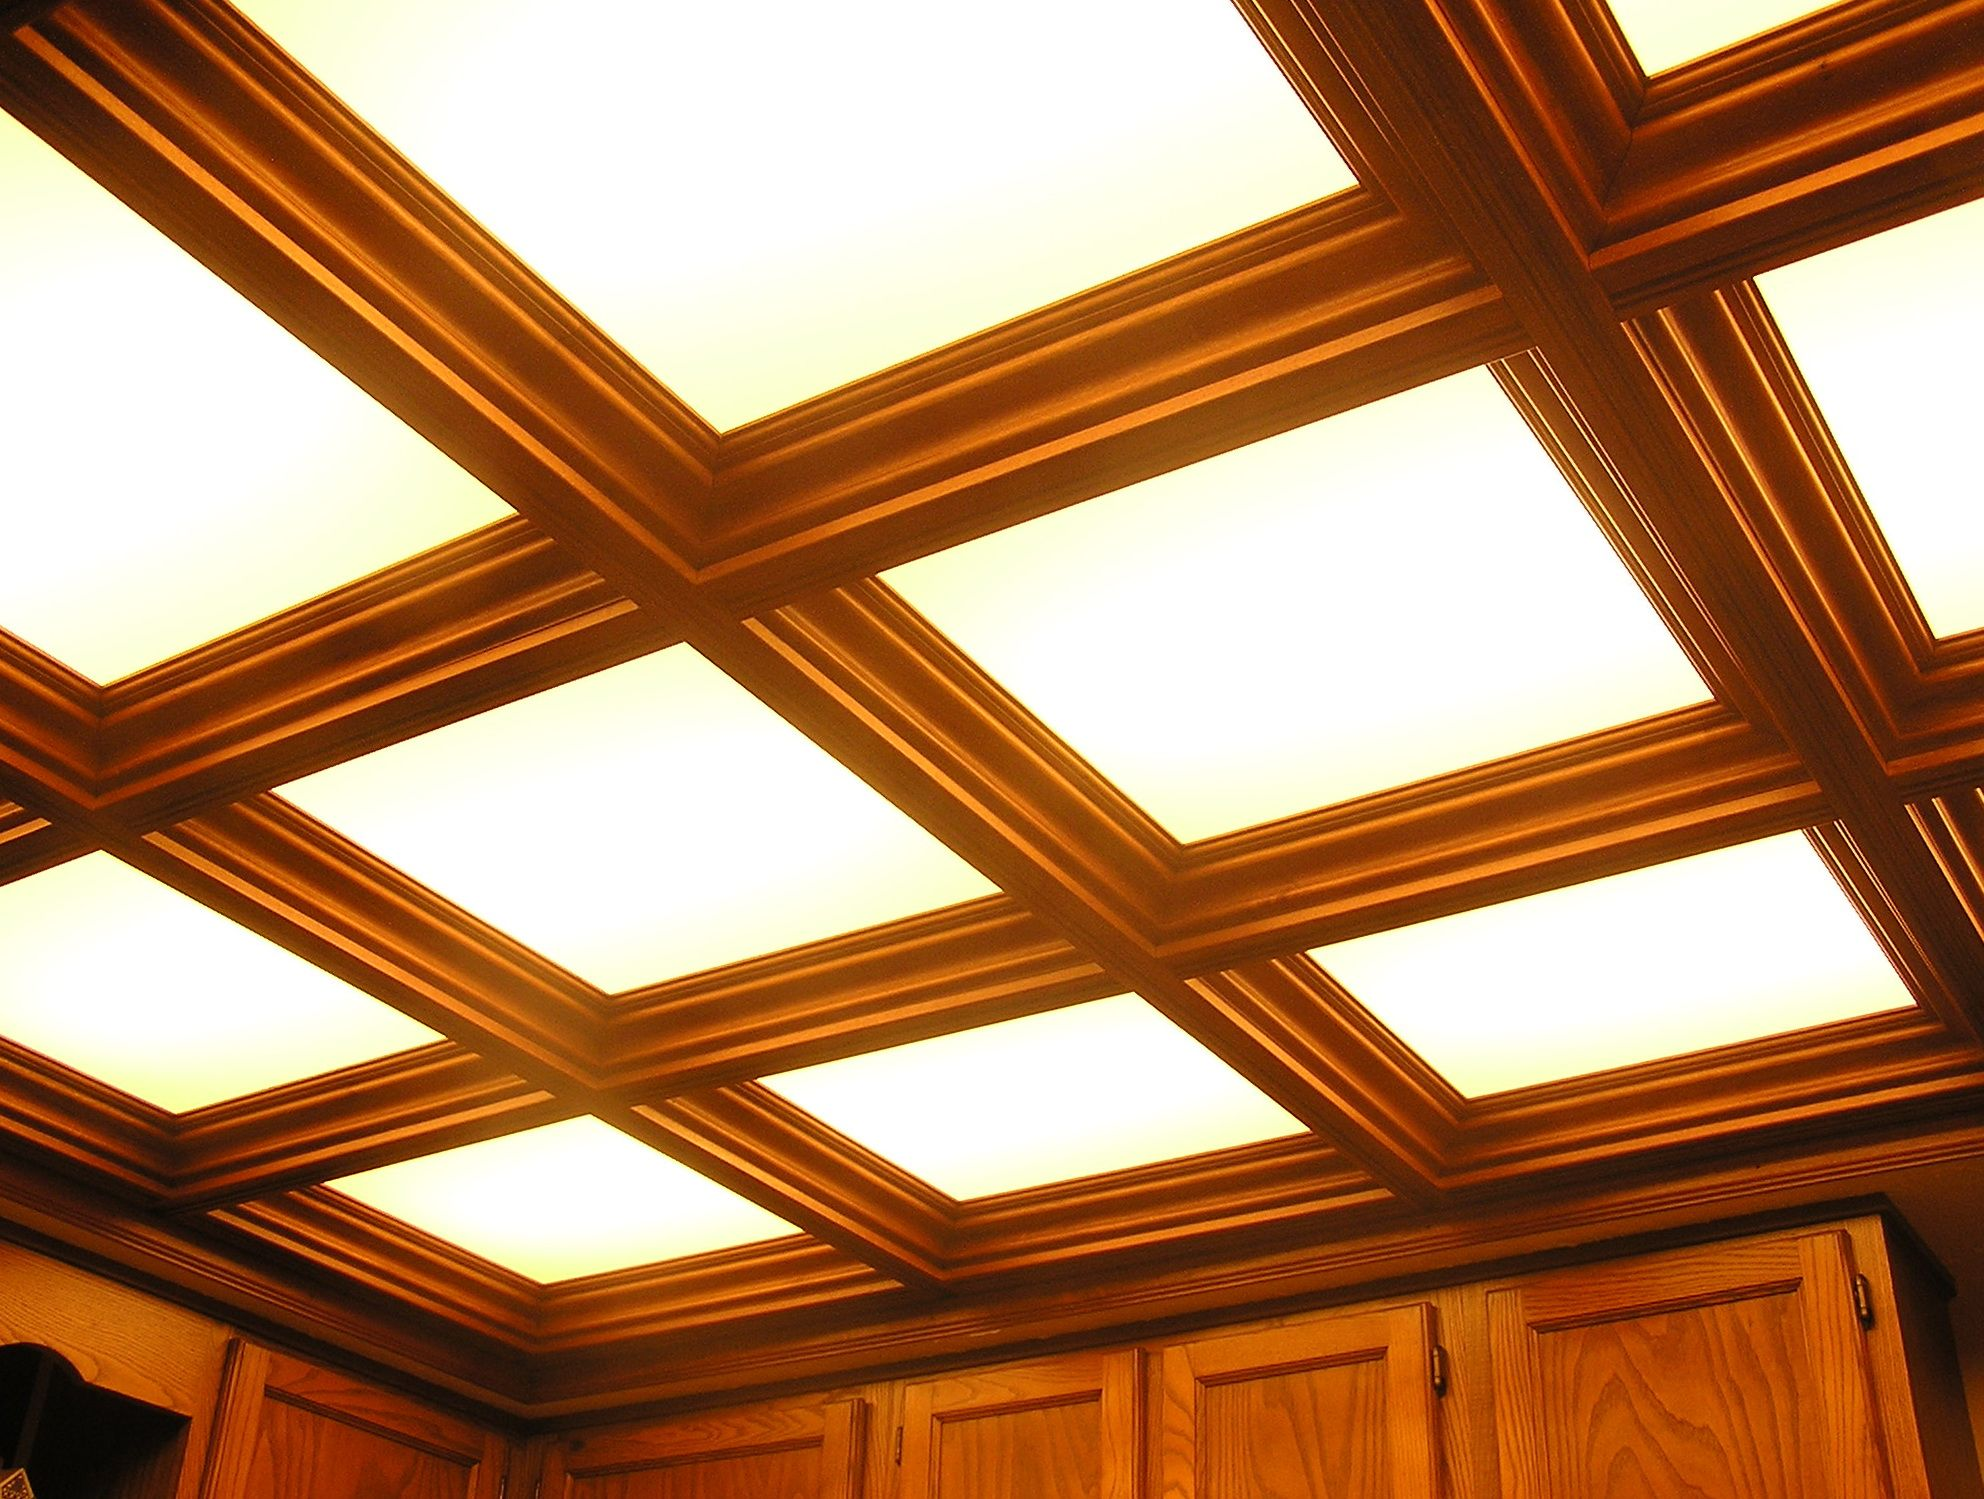 Wood ceiling tiles panels home design ideas ballroom ceilings wood ceiling tiles panels home design ideas dailygadgetfo Images